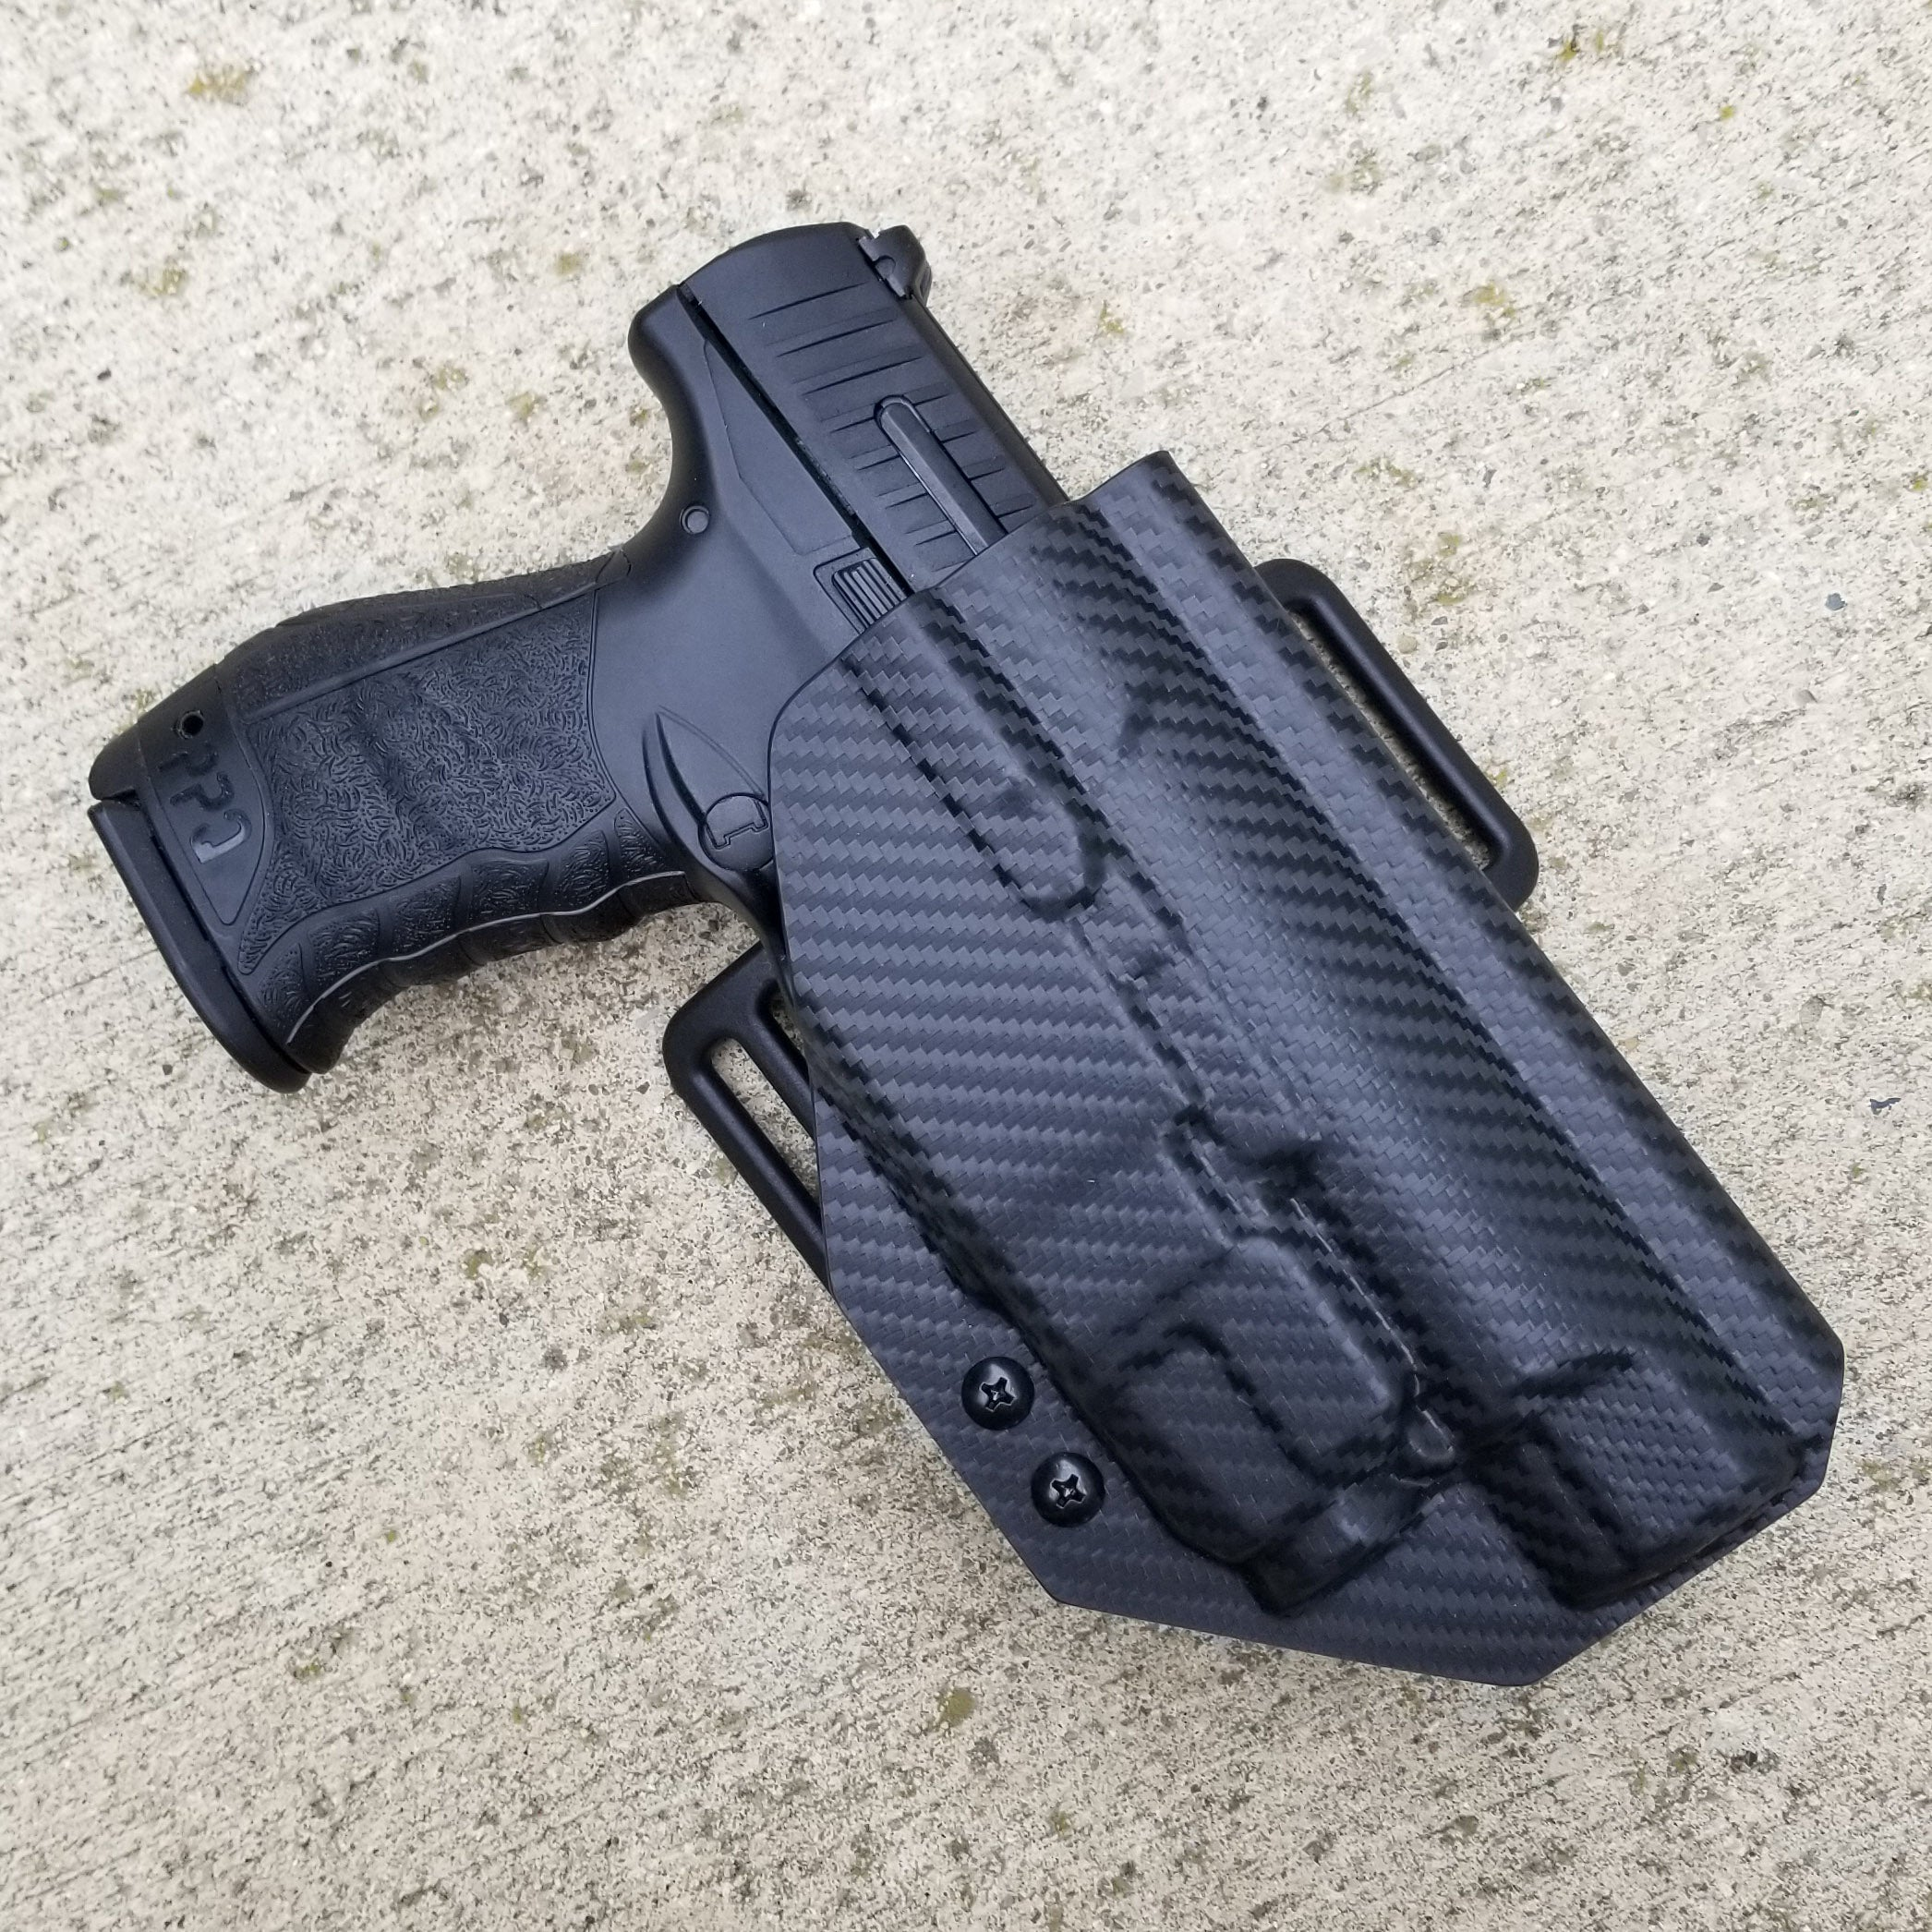 "Walther PPQ M2 4"" with TLR-7 OWB Holster"